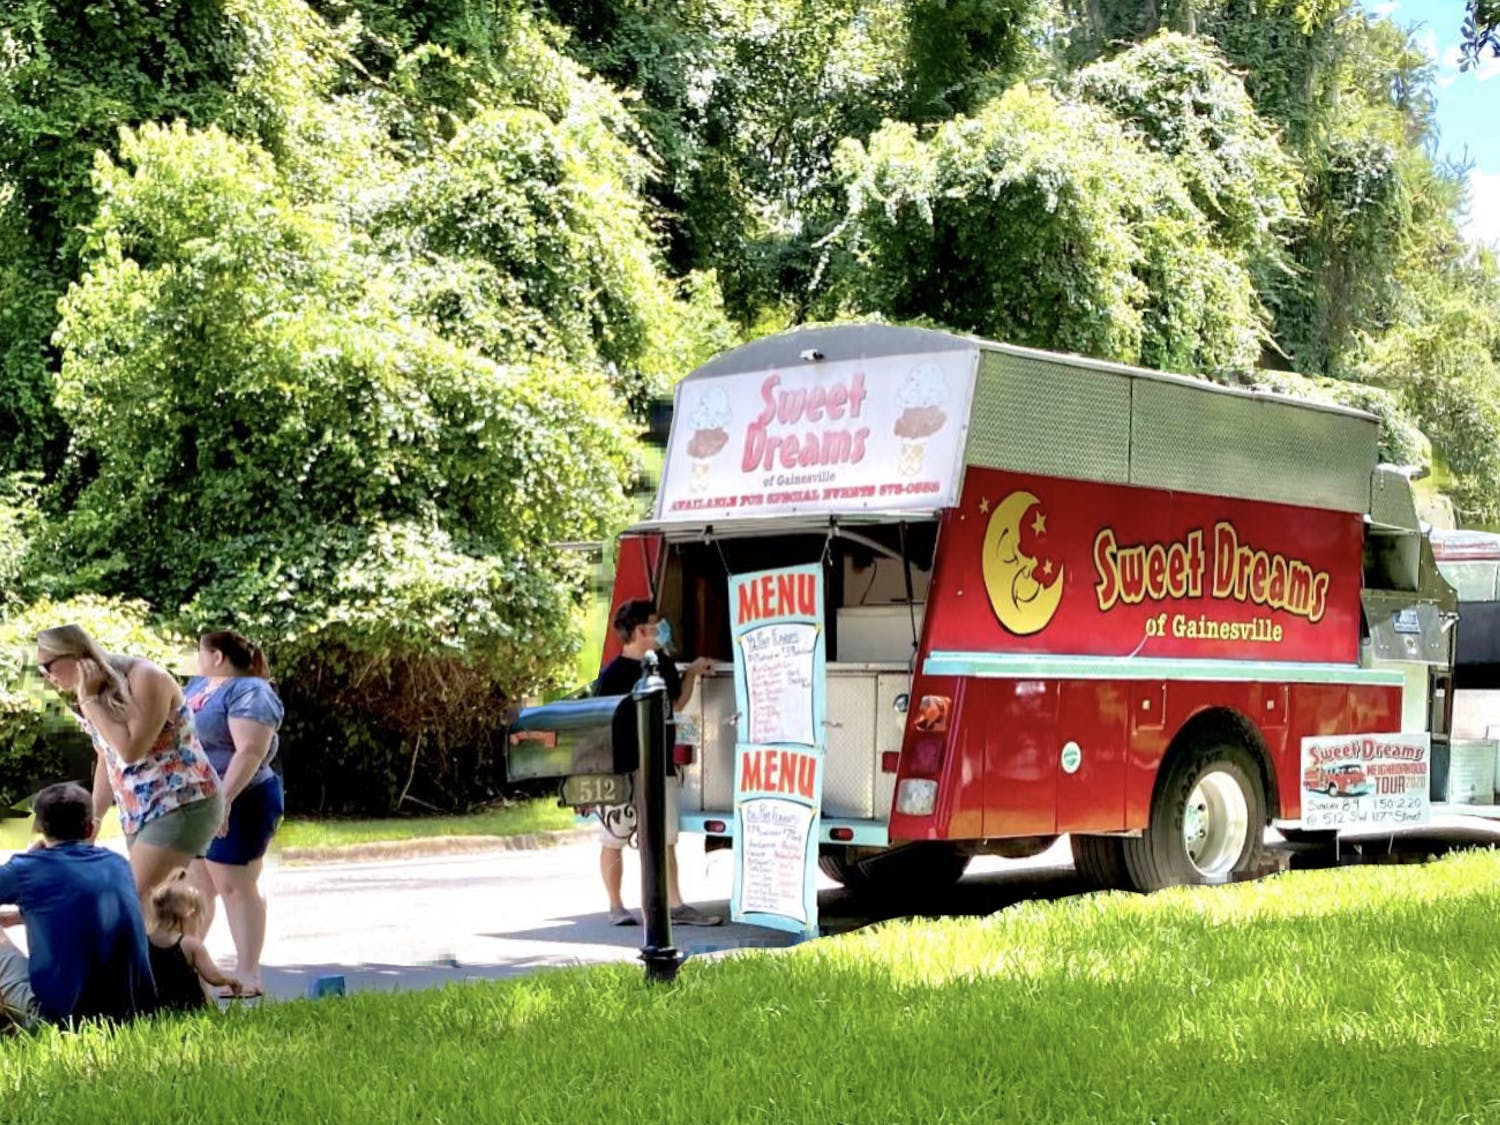 Starting last month, Sweet Dreams began its neighborhood ice cream truck tours in hopes of spreading the word about fully reopening again. (Courtesy to The Alligator)